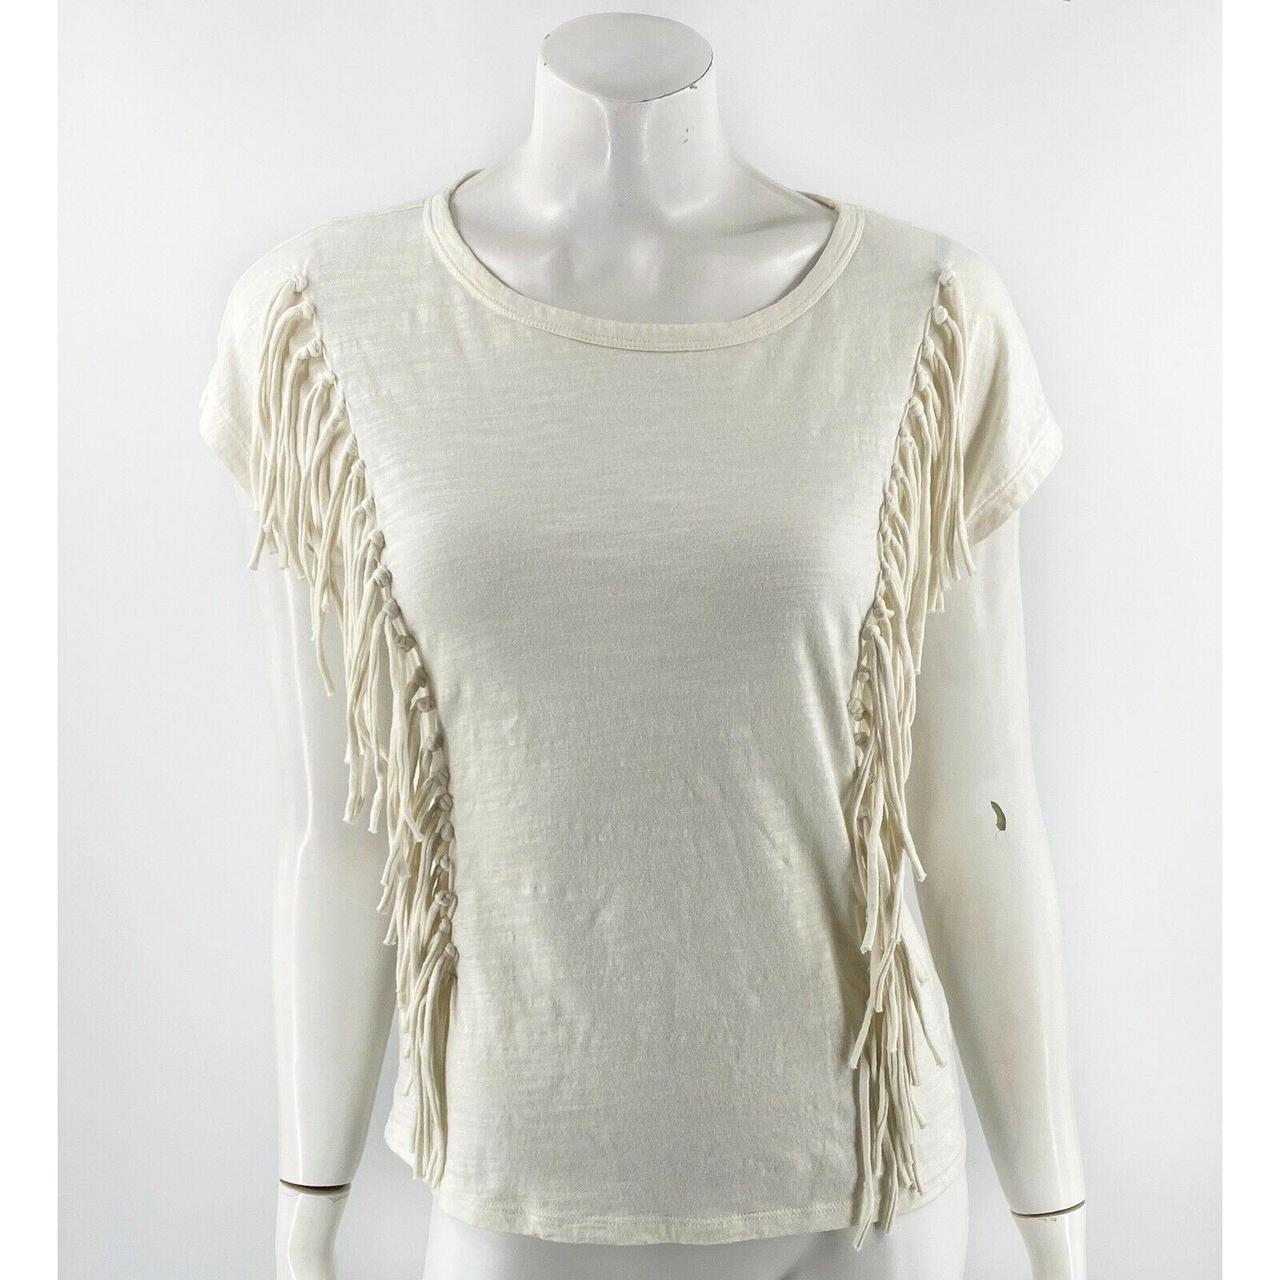 Product Image 1 - Forever 21 Top Size Medium